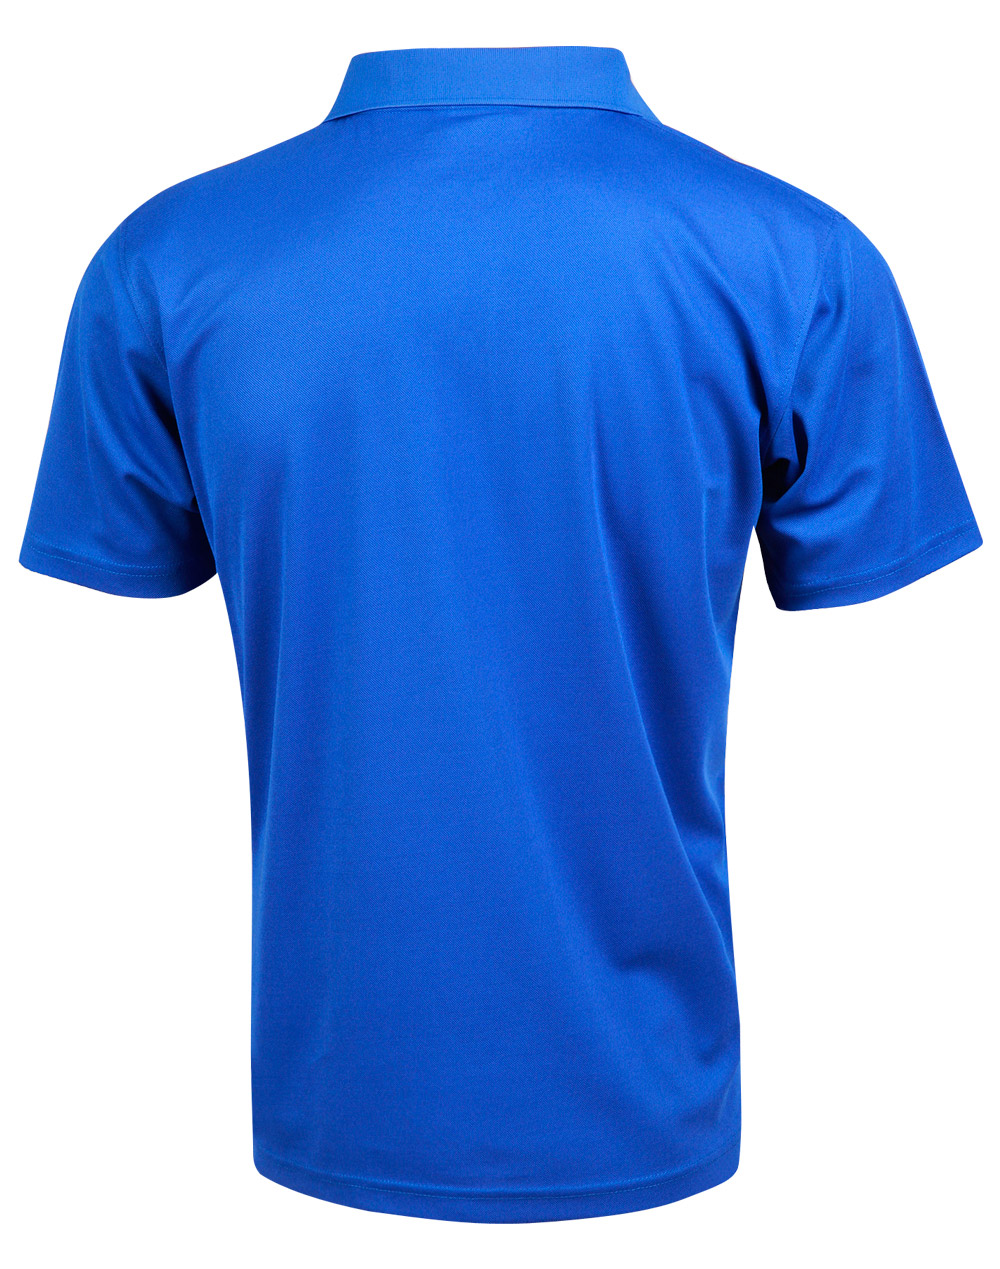 https://s3-ap-southeast-1.amazonaws.com/ws-imgs/POLOSHIRTS/PS81_Royal_Back.jpg